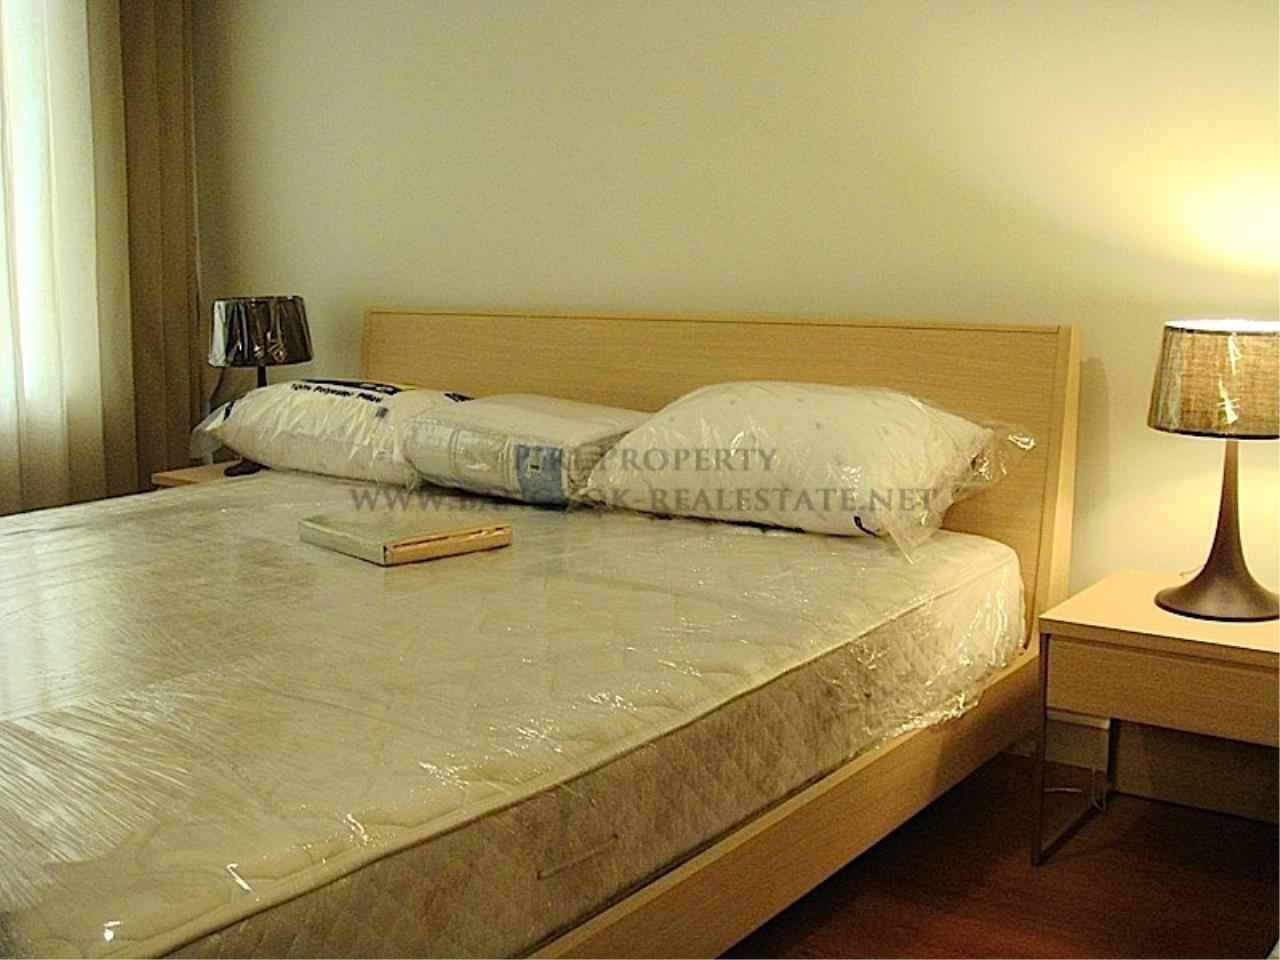 Piri Property Agency's Nicely Furnished One Bedroom Unit - Condo One X 1